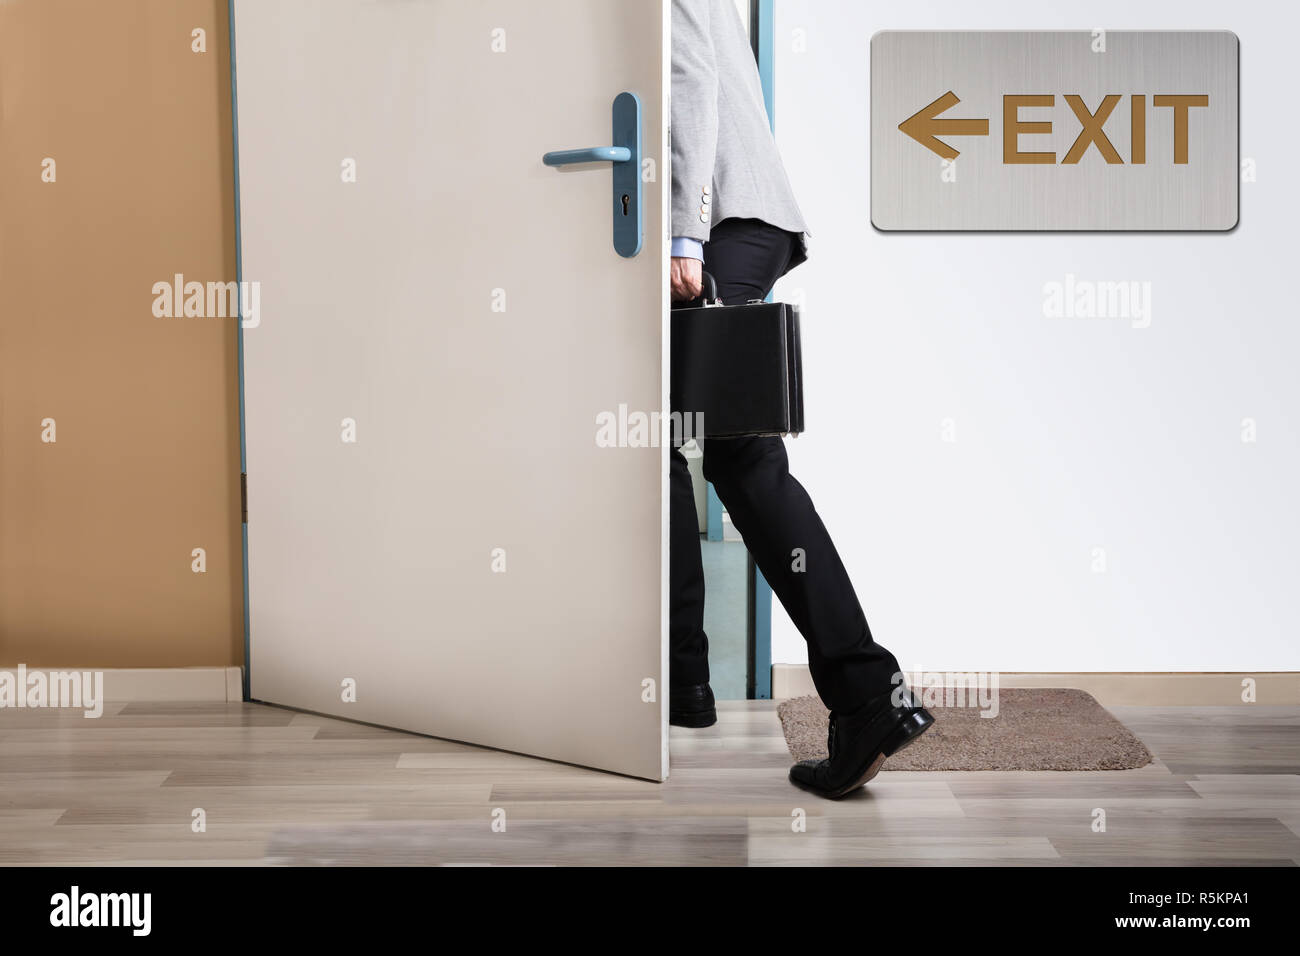 Businessperson Walking Out - Stock Image